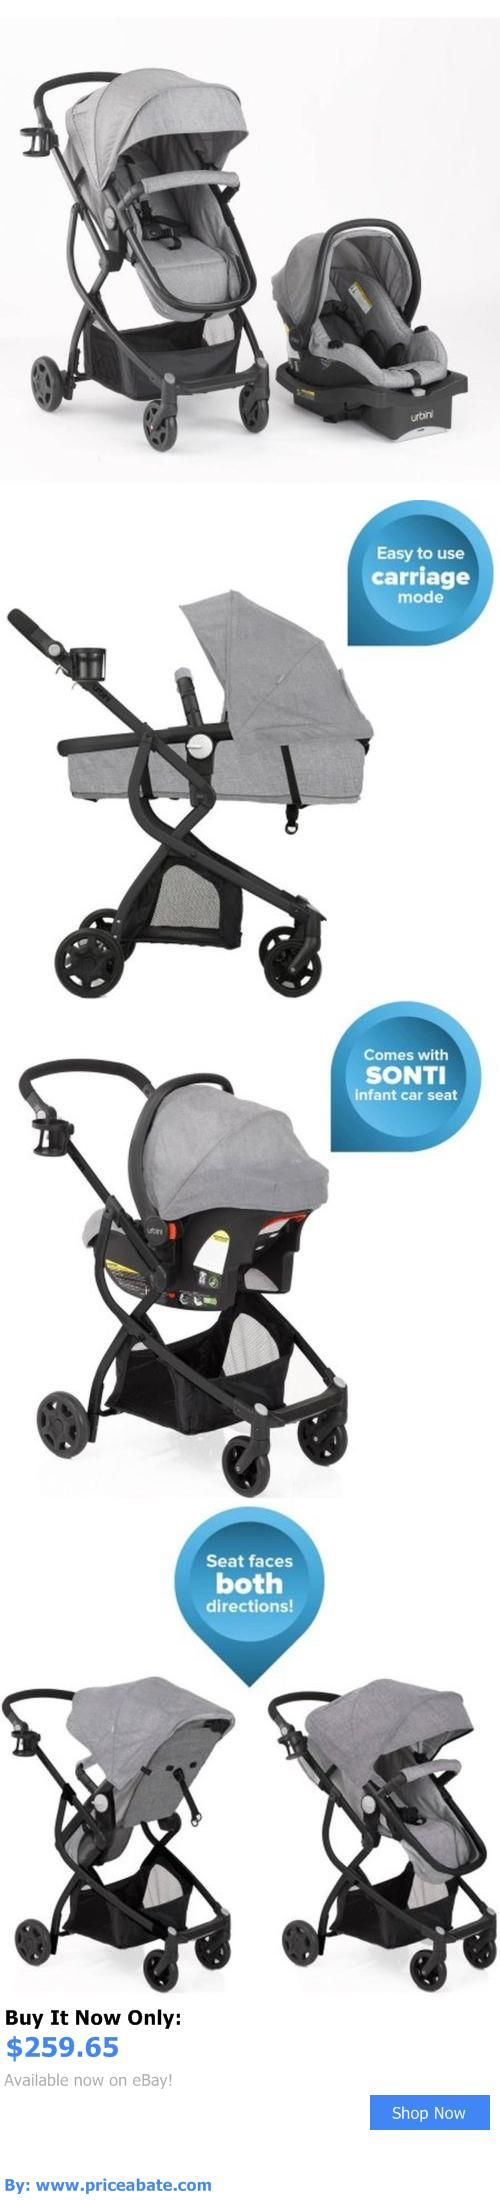 Baby and kid stuff 3 in1 baby stroller car seat travel system infant carriage buggy